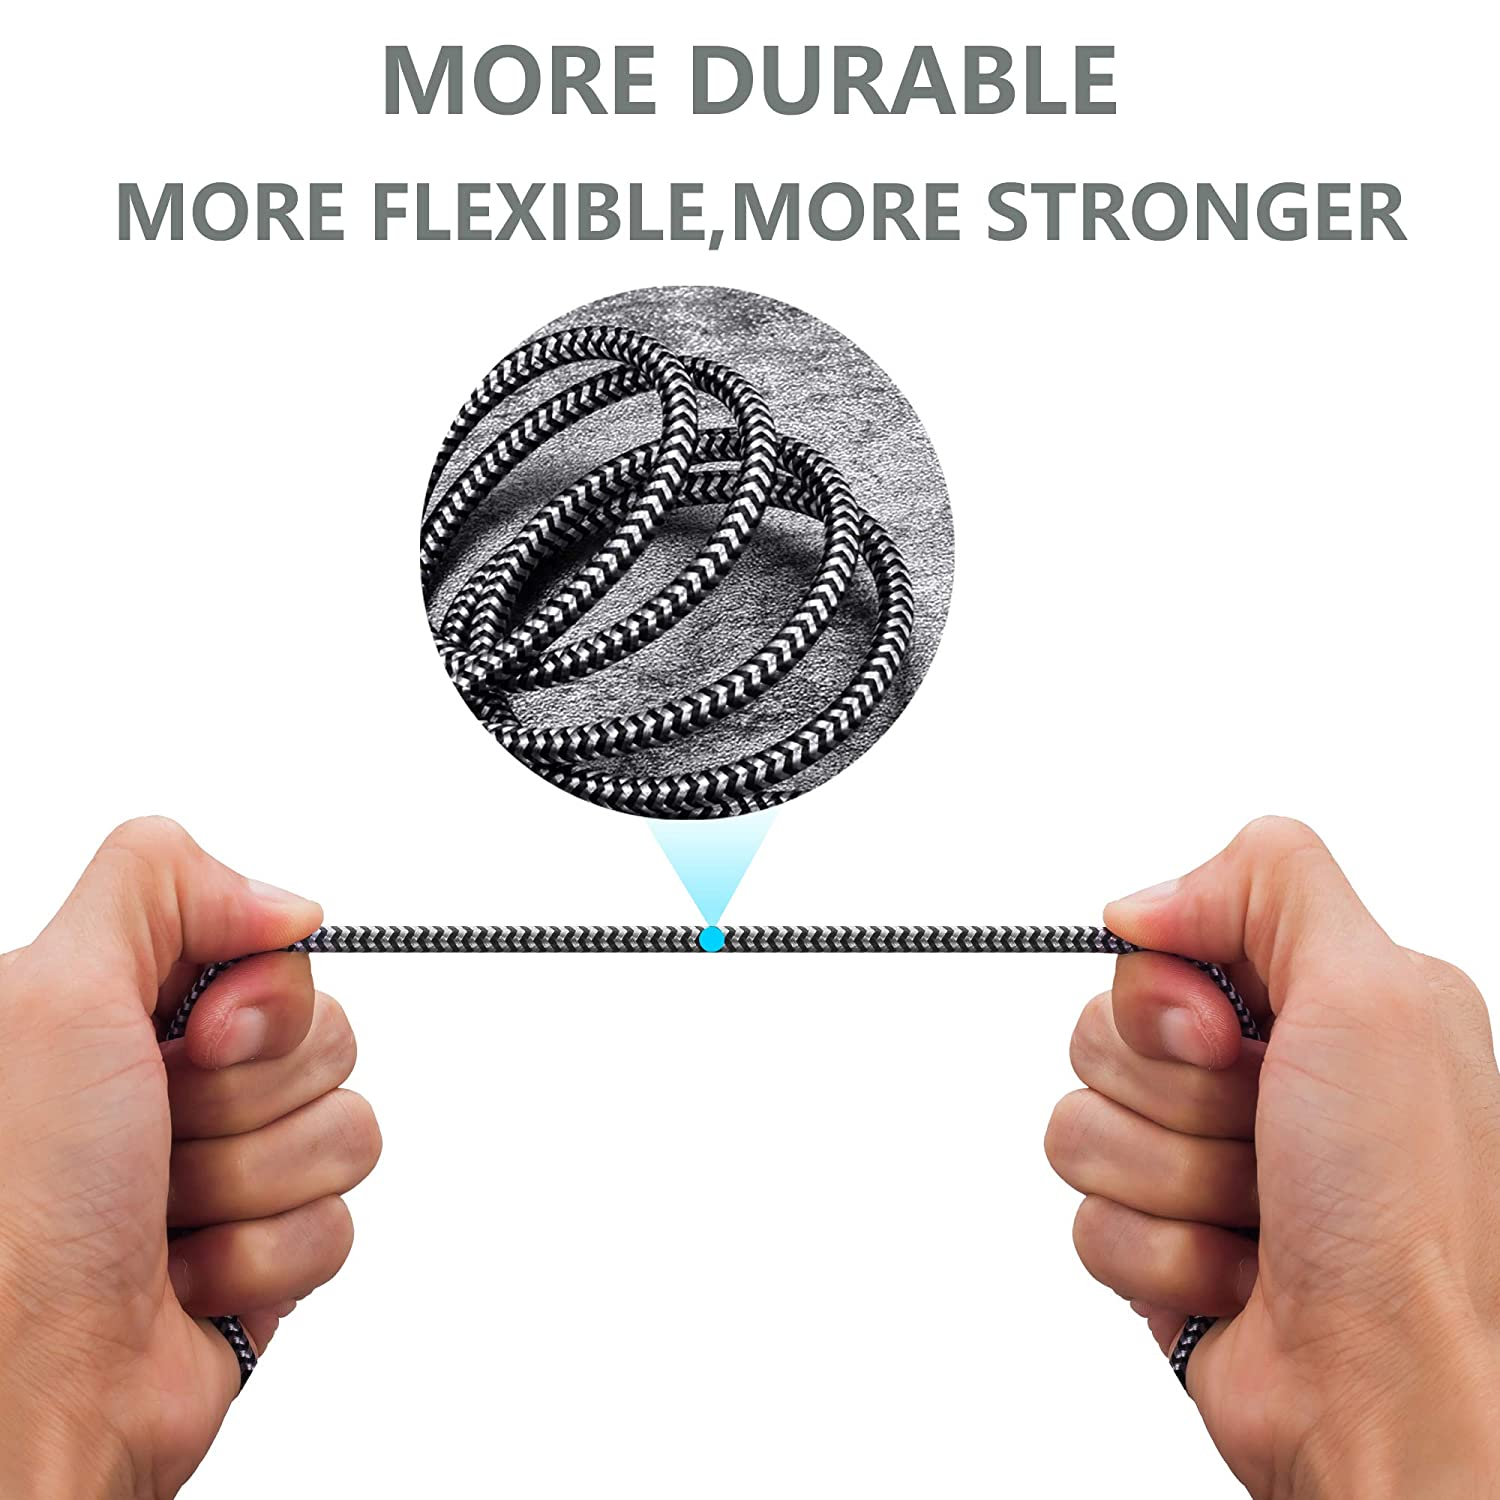 1//4 Morelecs 1//4 inch TRS Cable 20ft TRS Stereo Audio Cable Male to Male Heavy Duty 6.35mm Male to Male Stereo Jack Balanced Audio Path Cord 1//4 6.35mm TRS to 6.35mm